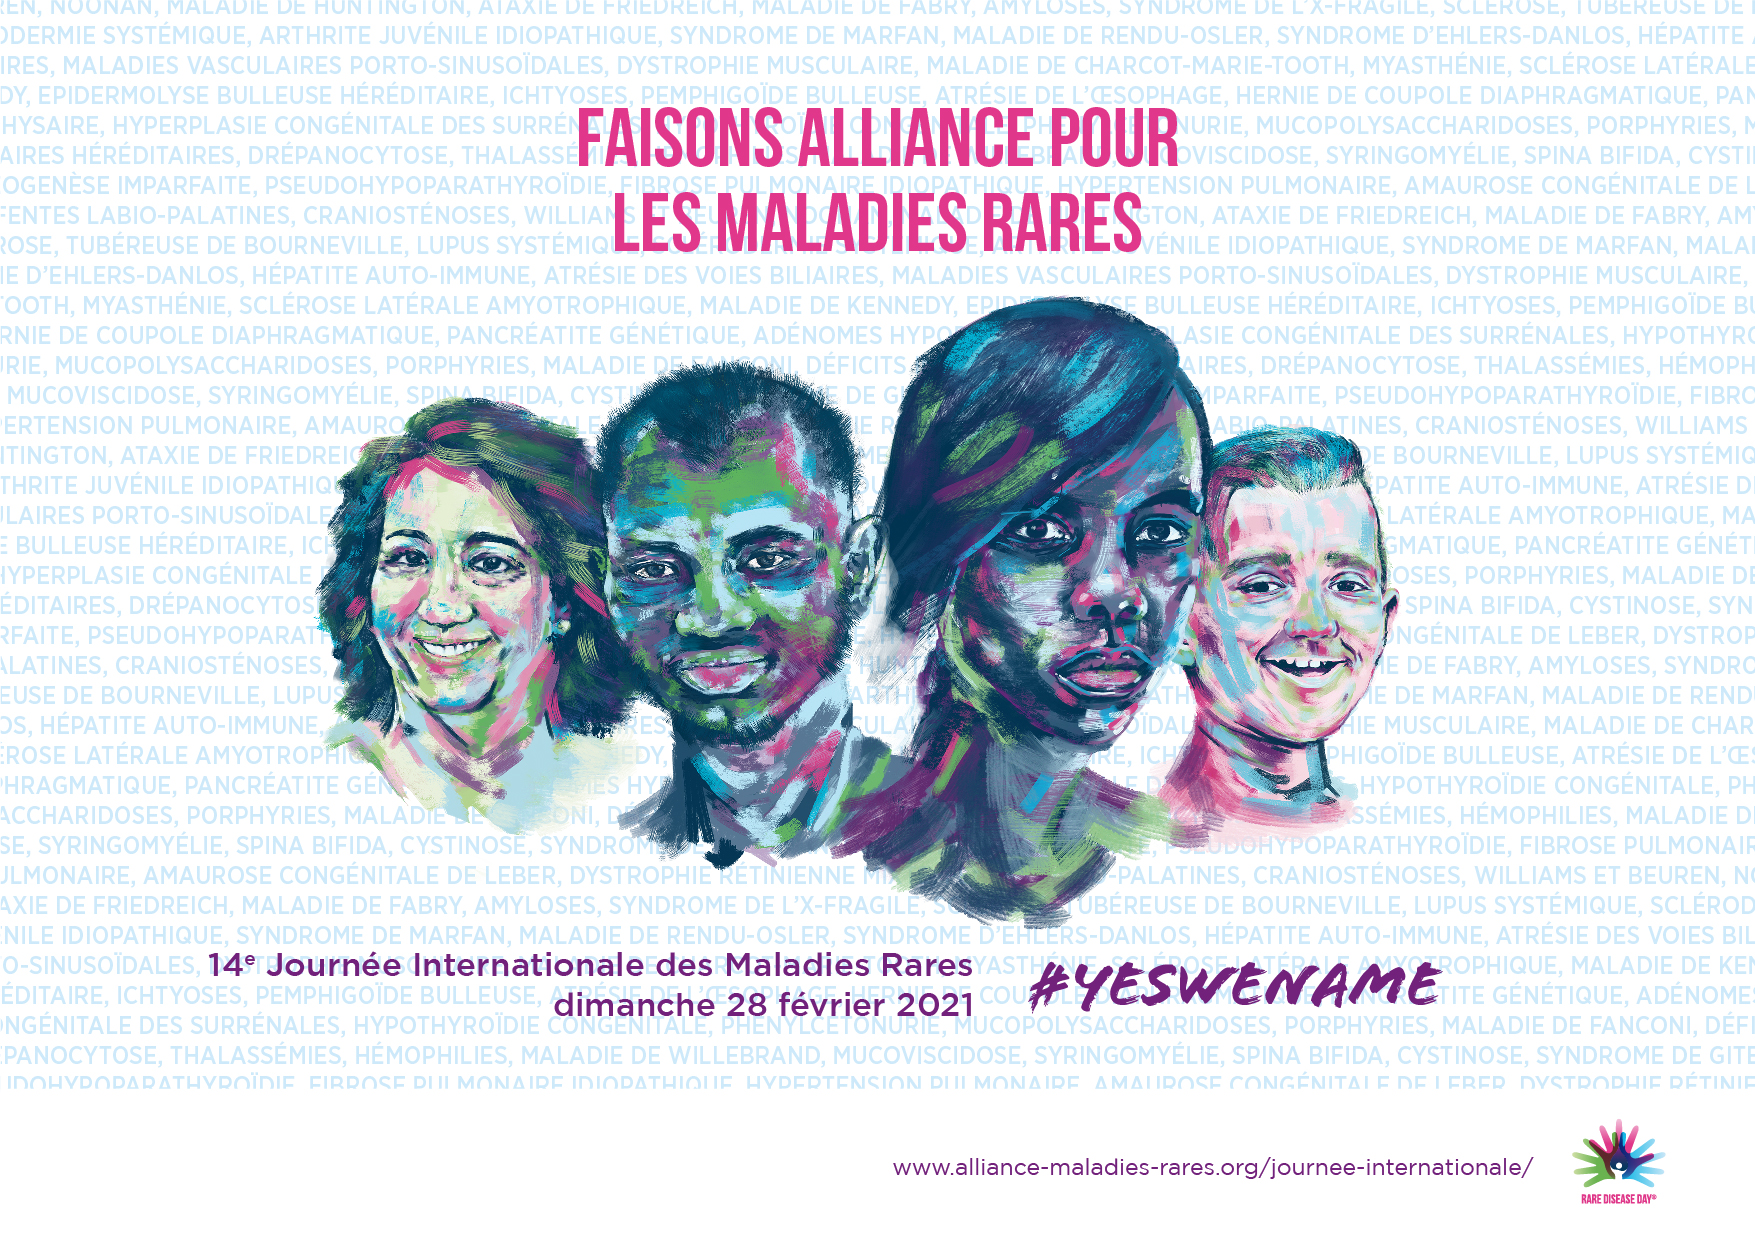 Journée Internationale Maladies Rares 2021